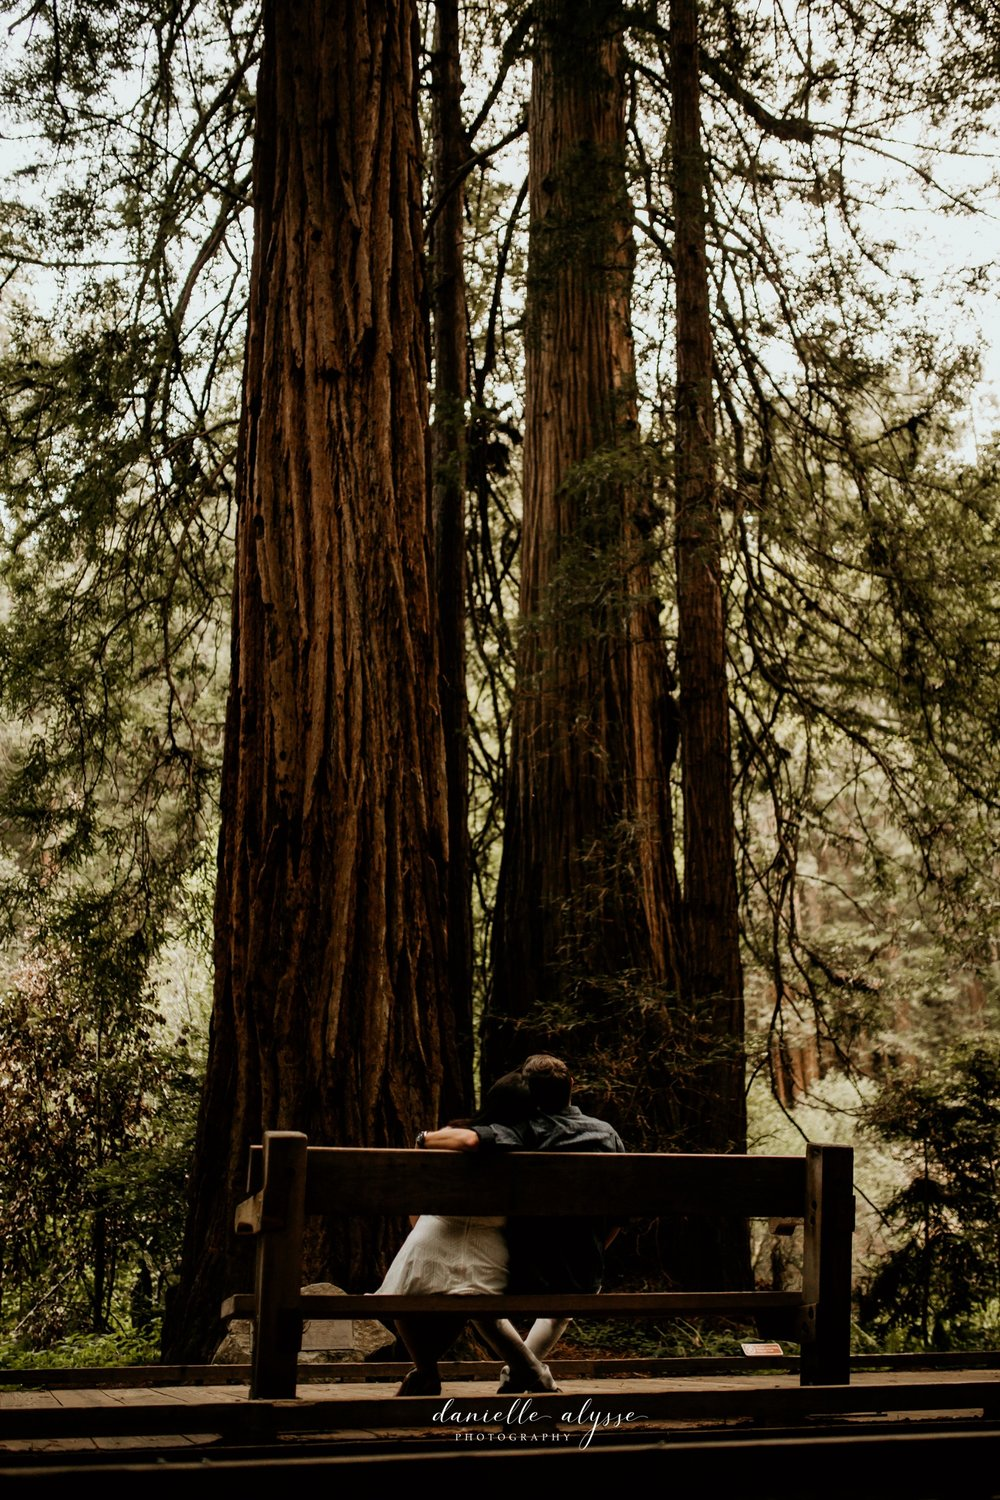 180503_engagement_bianca_muir_woods_mill_valley_danielle_alysse_photography_bay_area_photographer_blog_66_WEB.jpg